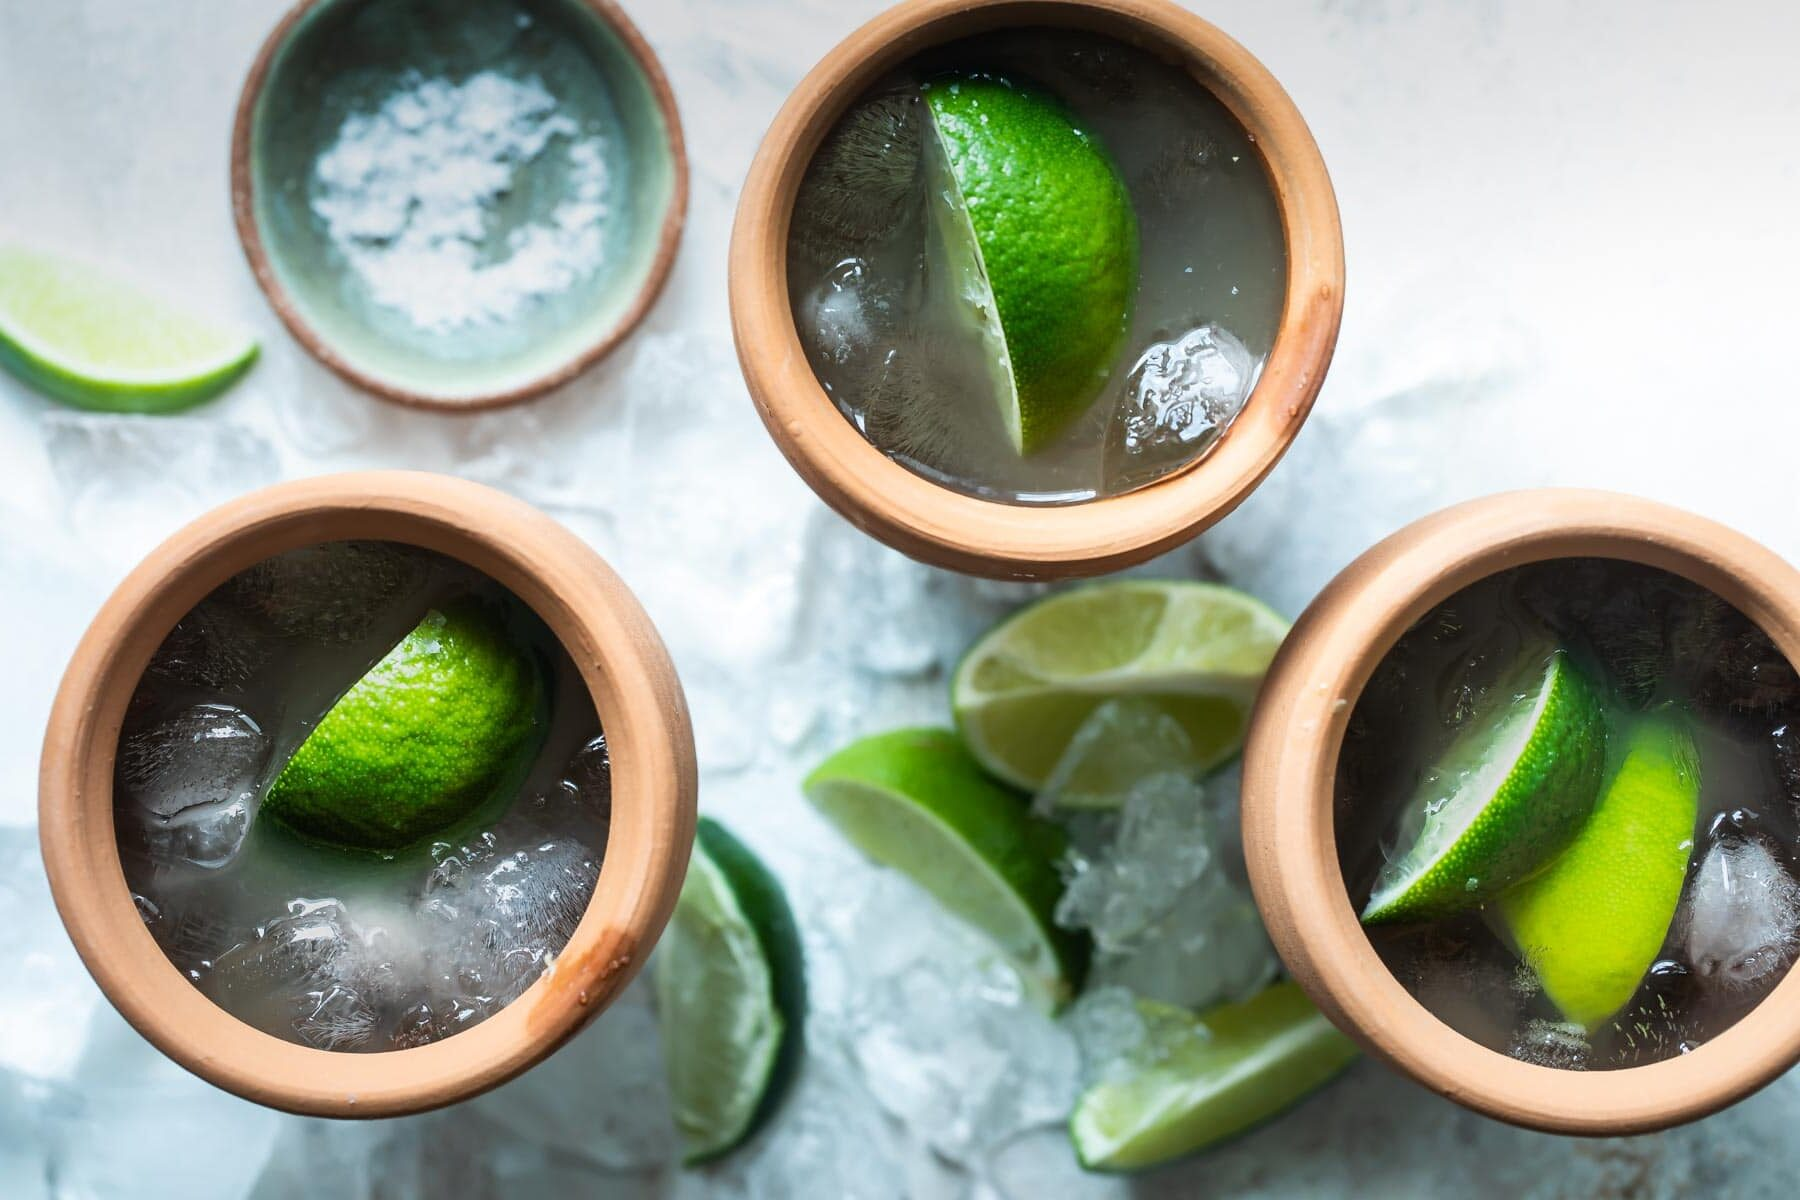 3 Cantarito cocktails in clay cups.